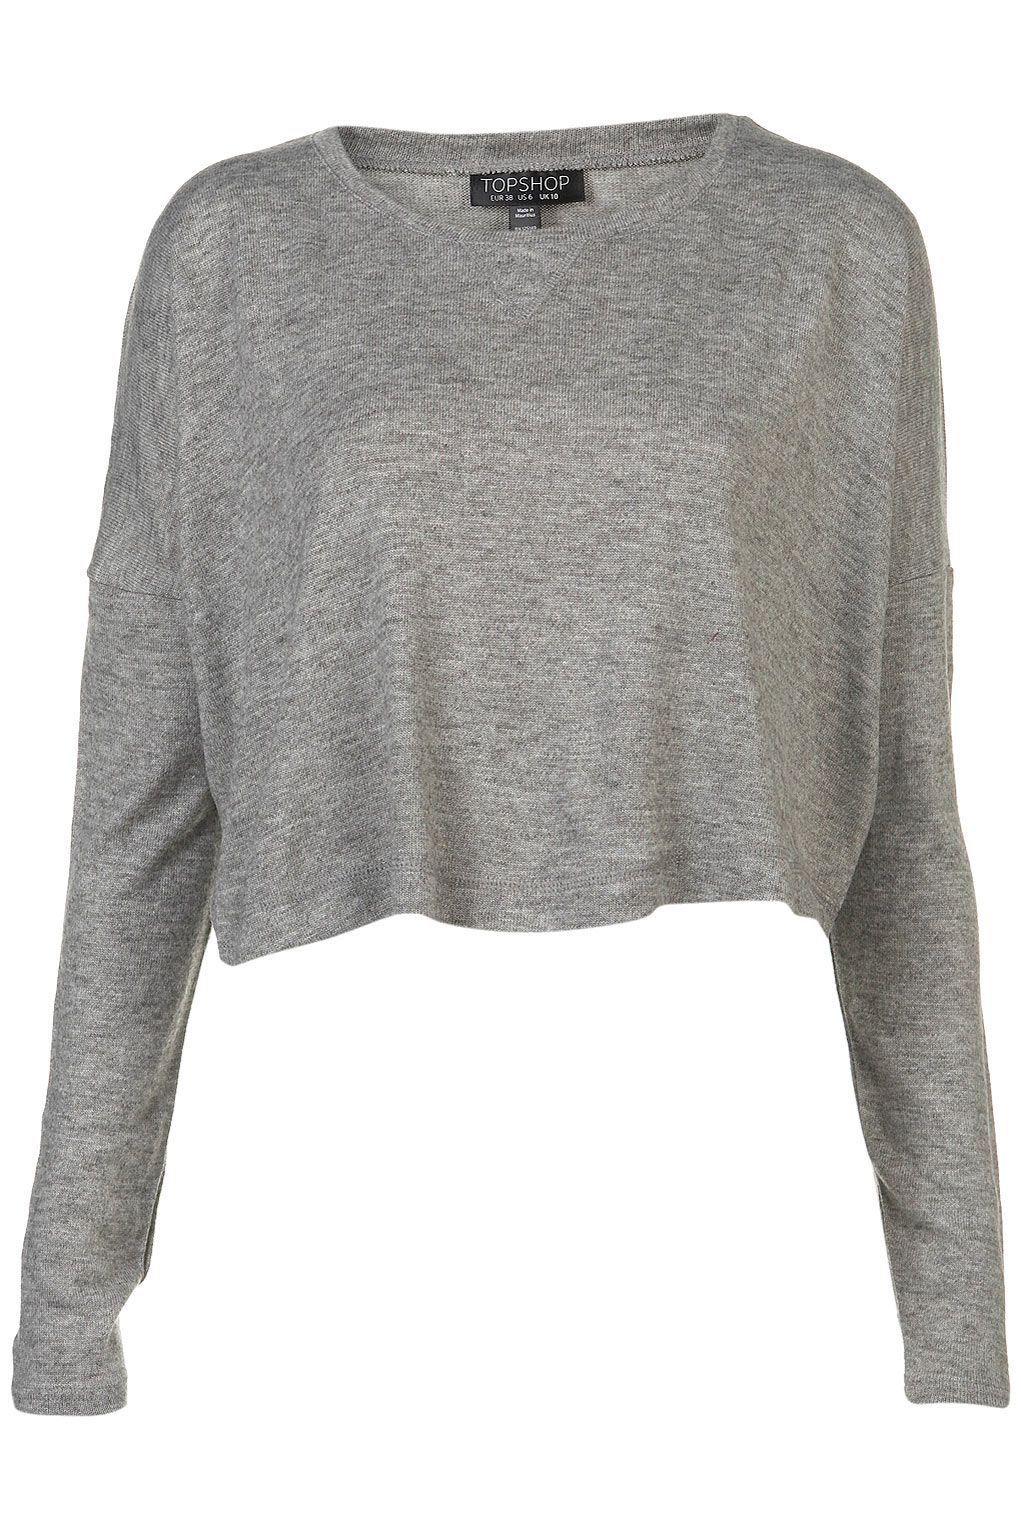 long sleeve cropped top | 2. Bad Bittie Sway | Pinterest | Long ...